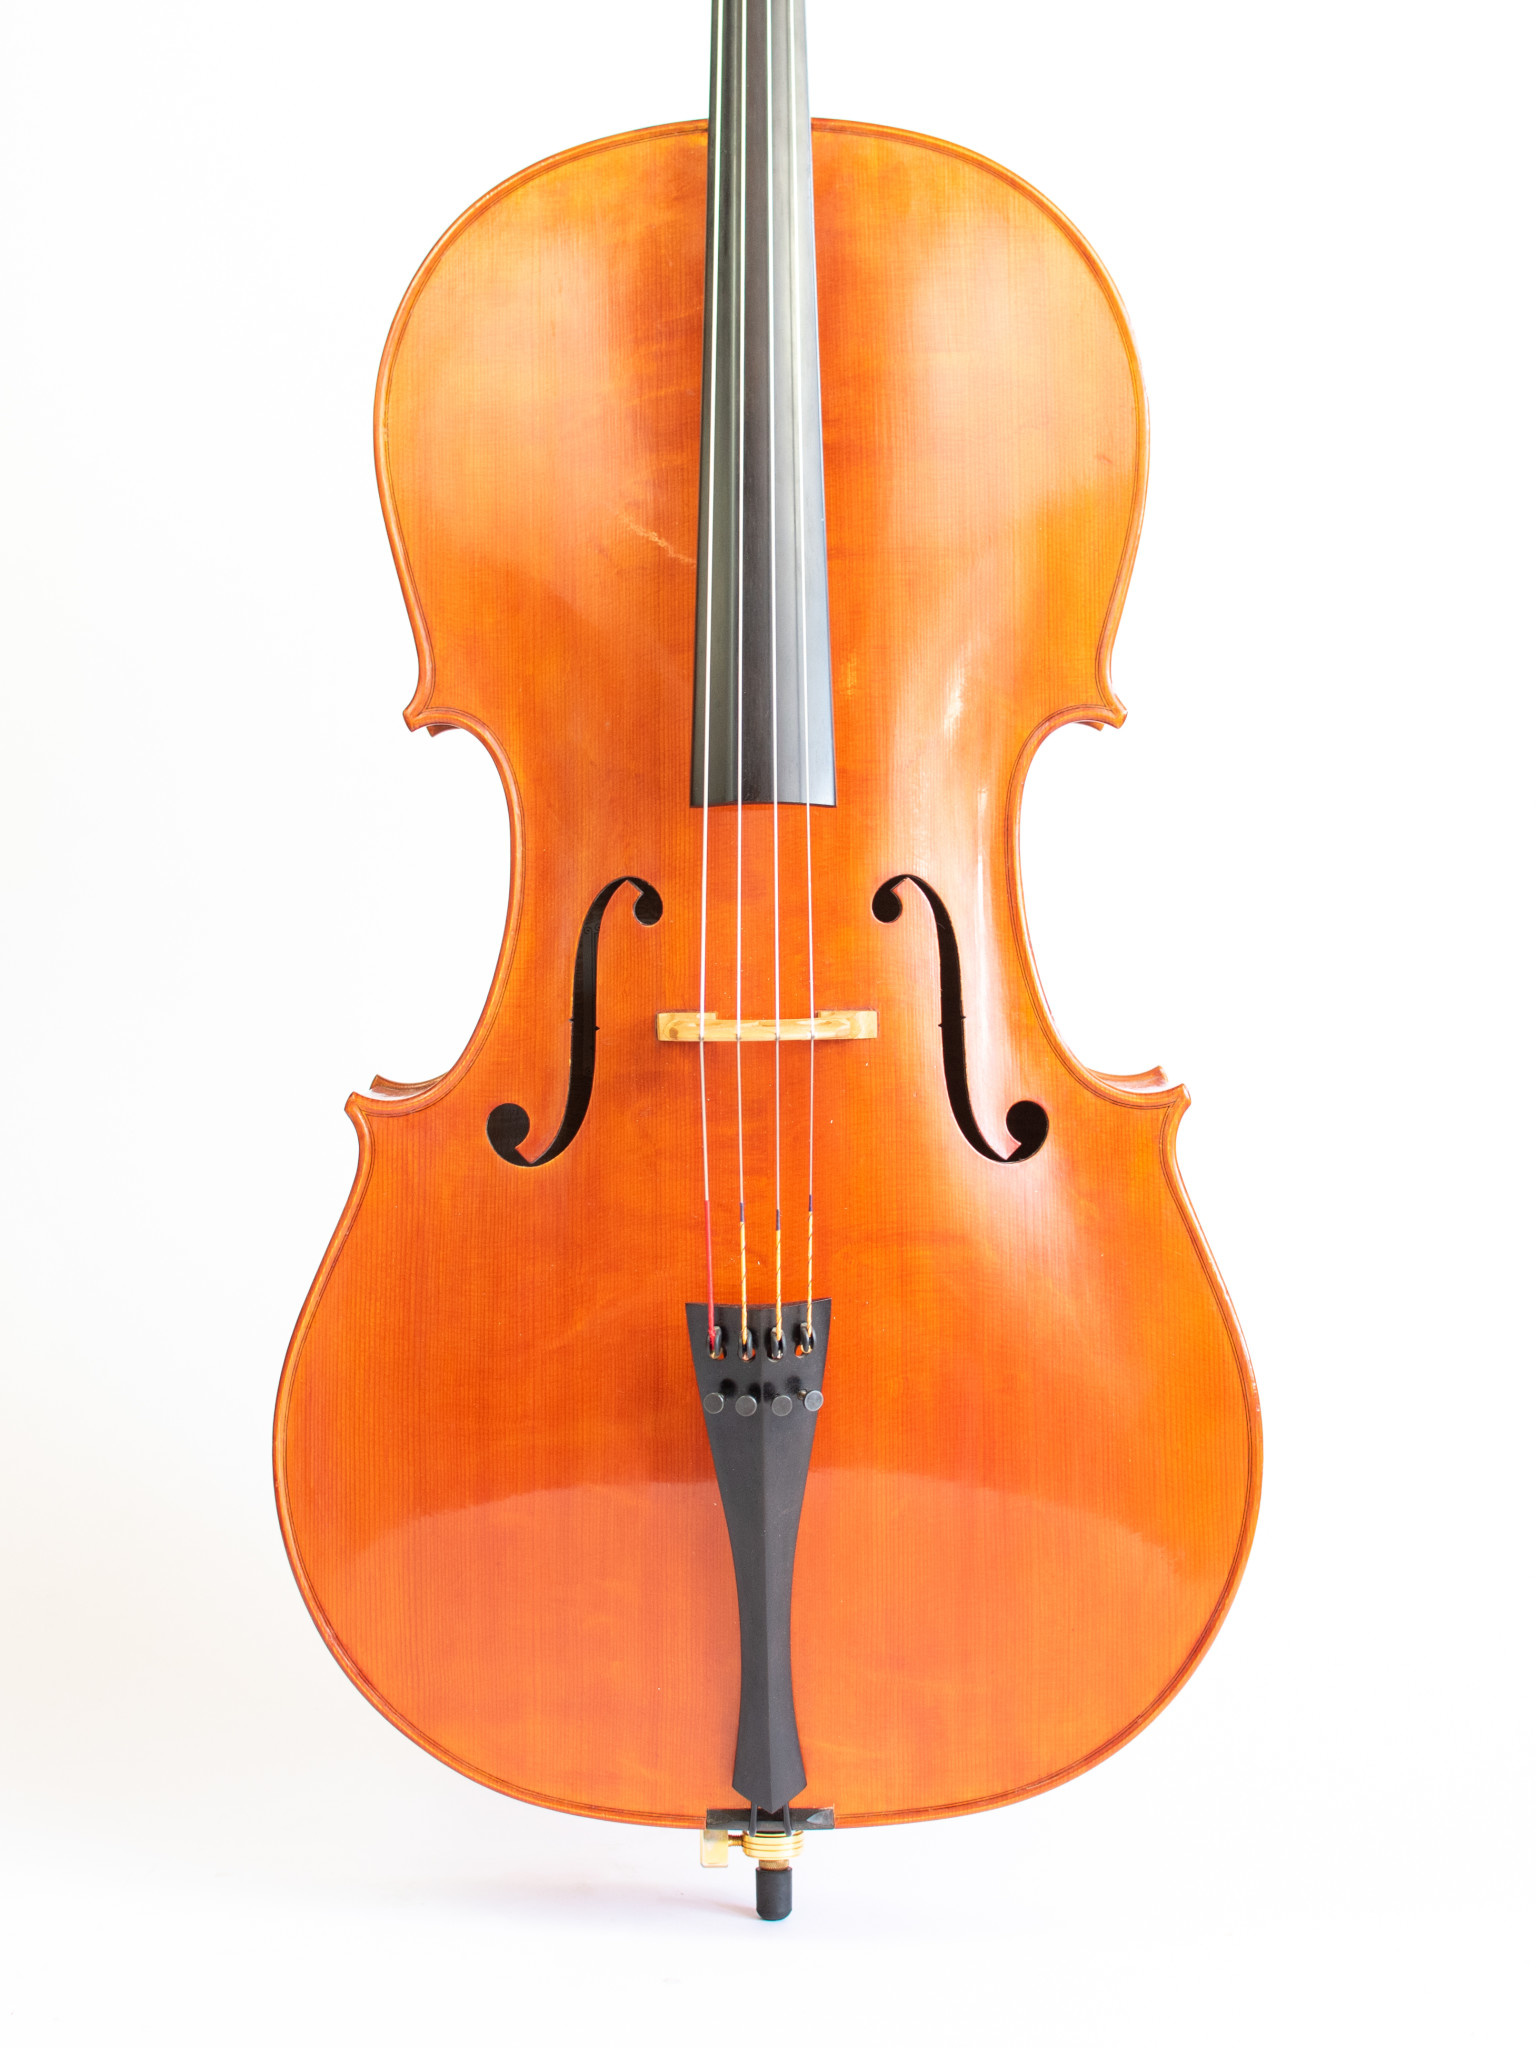 Carlos Funes Vitanza 4/4 cello, 2002, Duport Strad model